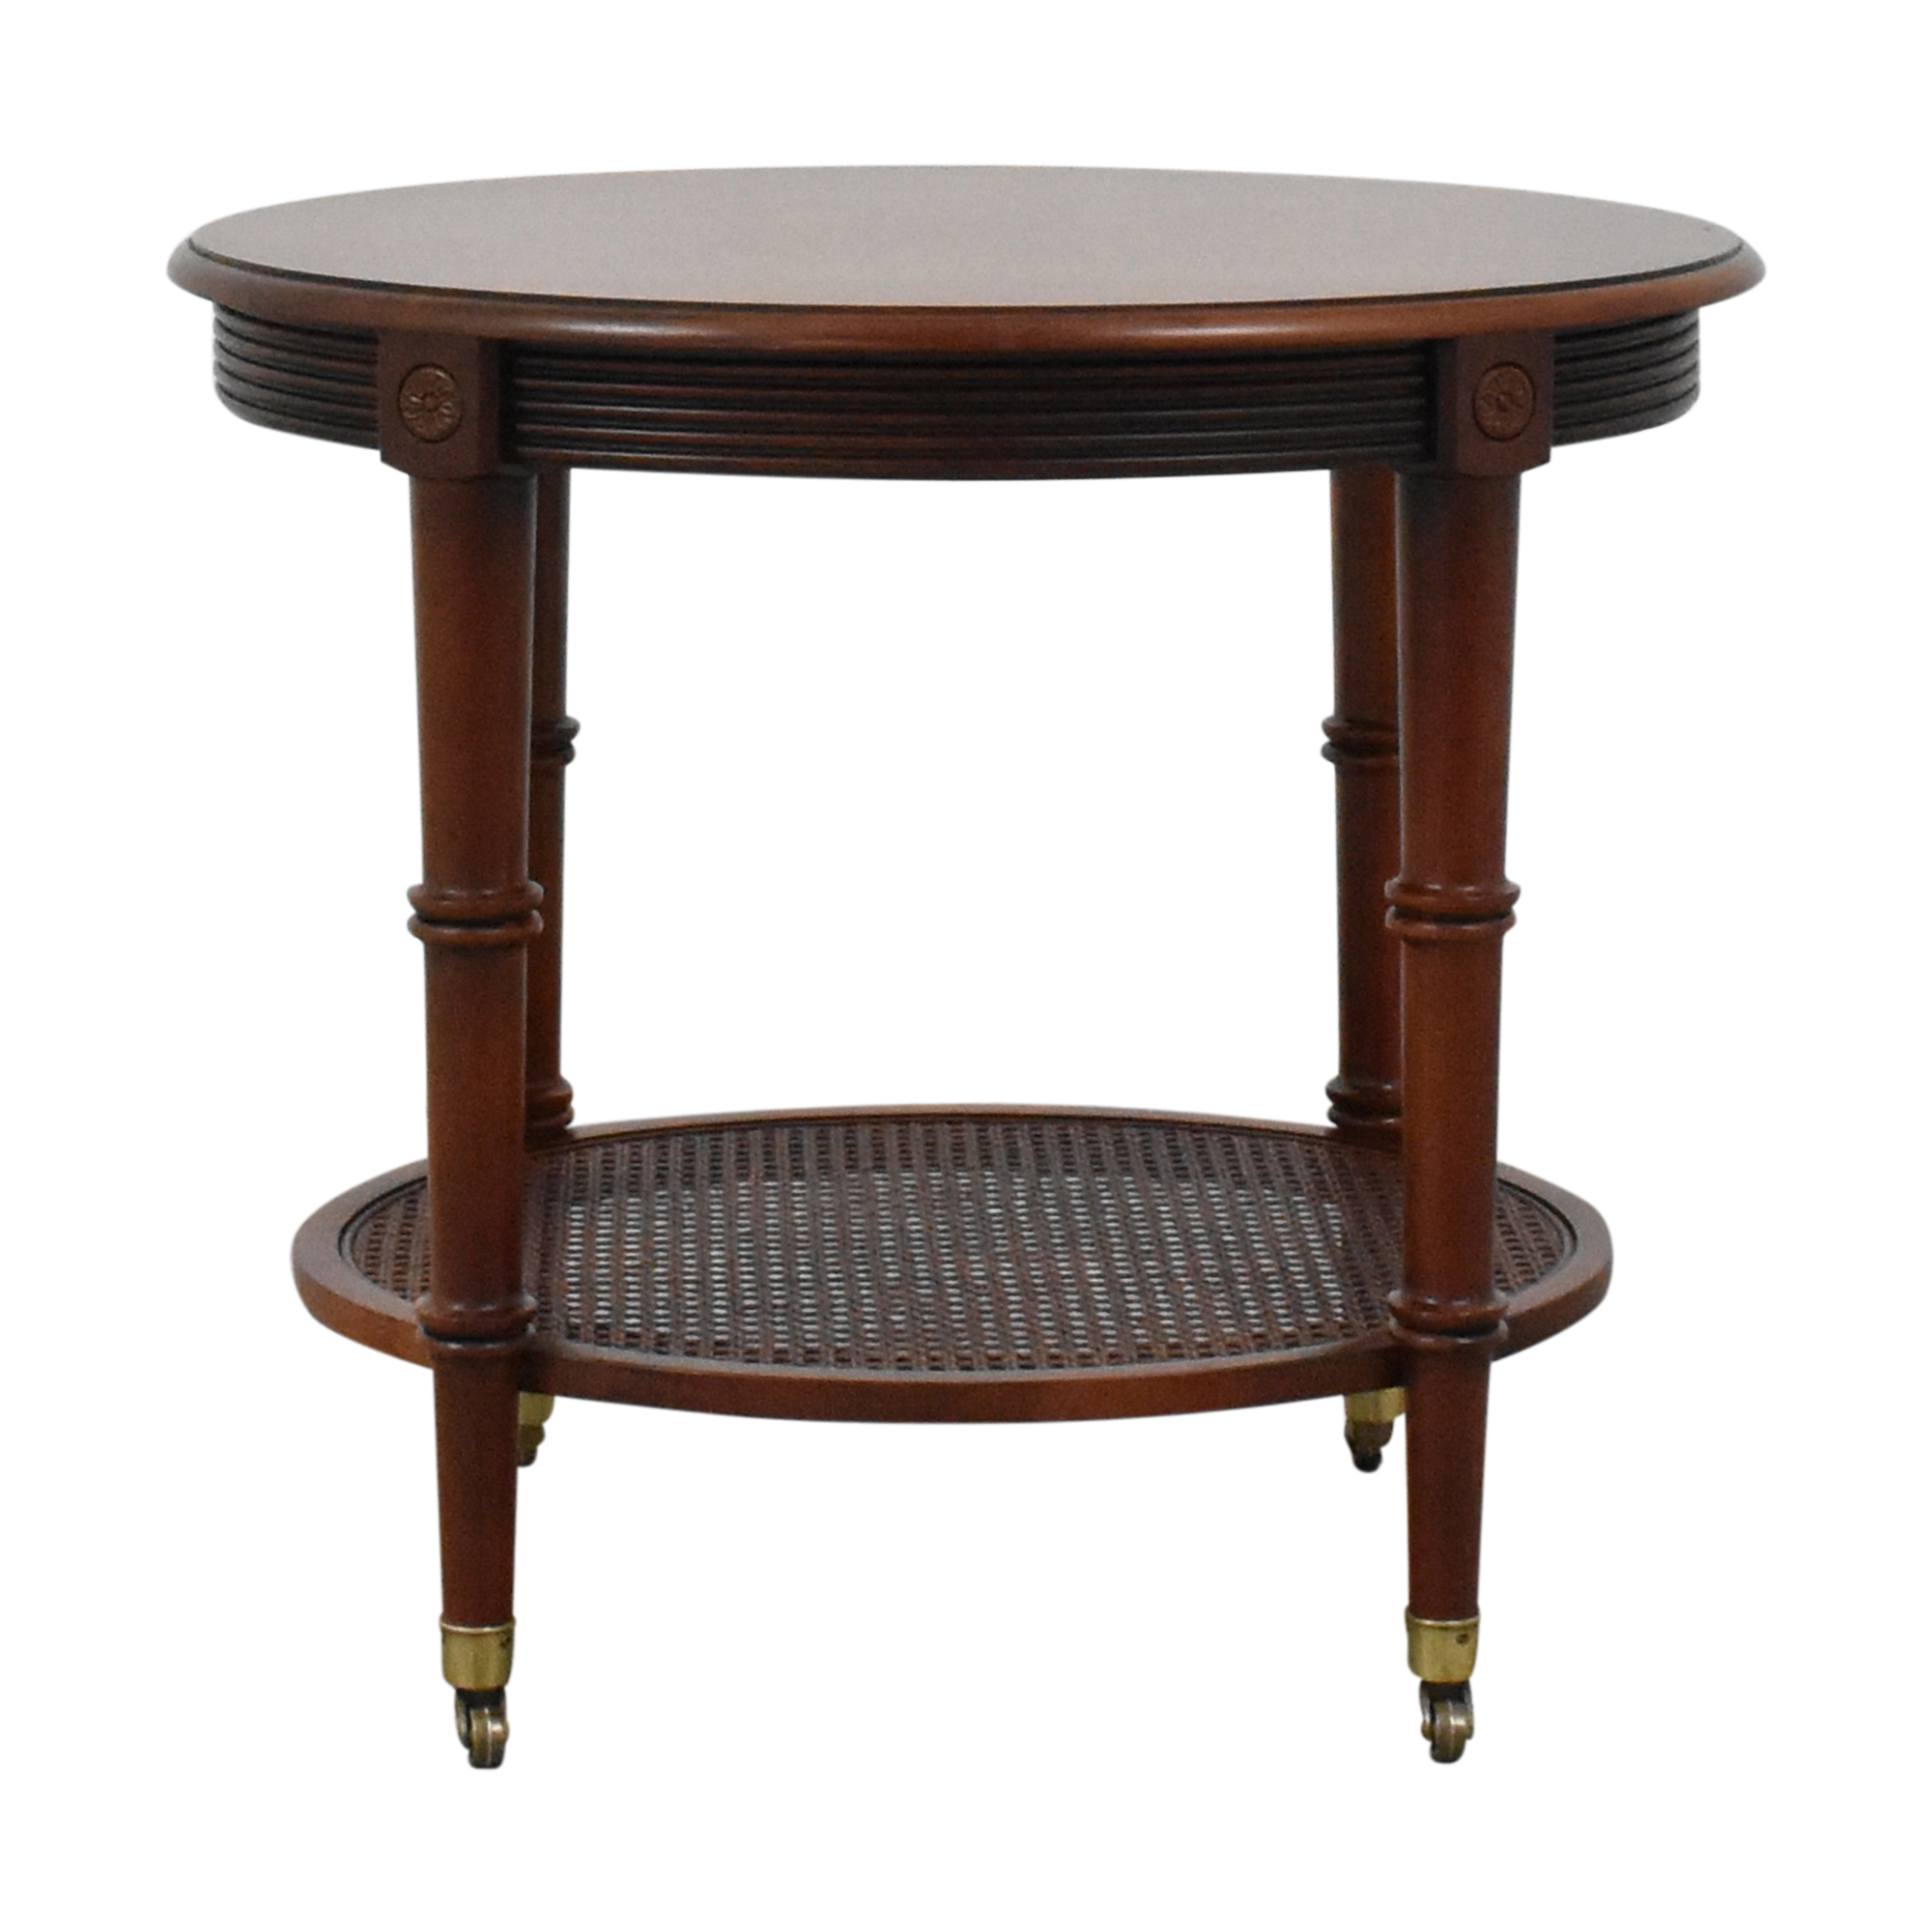 Ethan Allen Ethan Allen British Classics Oval End Table ma